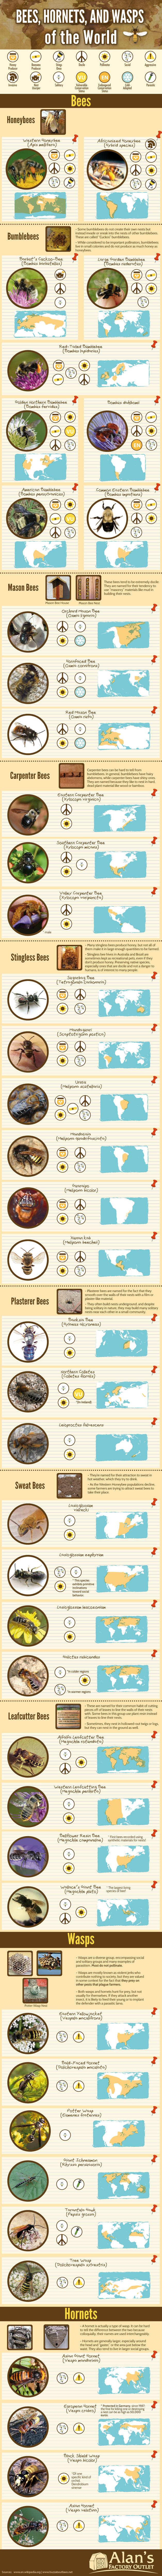 Where Would We Be Without the Bees? A Visual Dictionary of Bees, Hornets and Wasps - Infographic